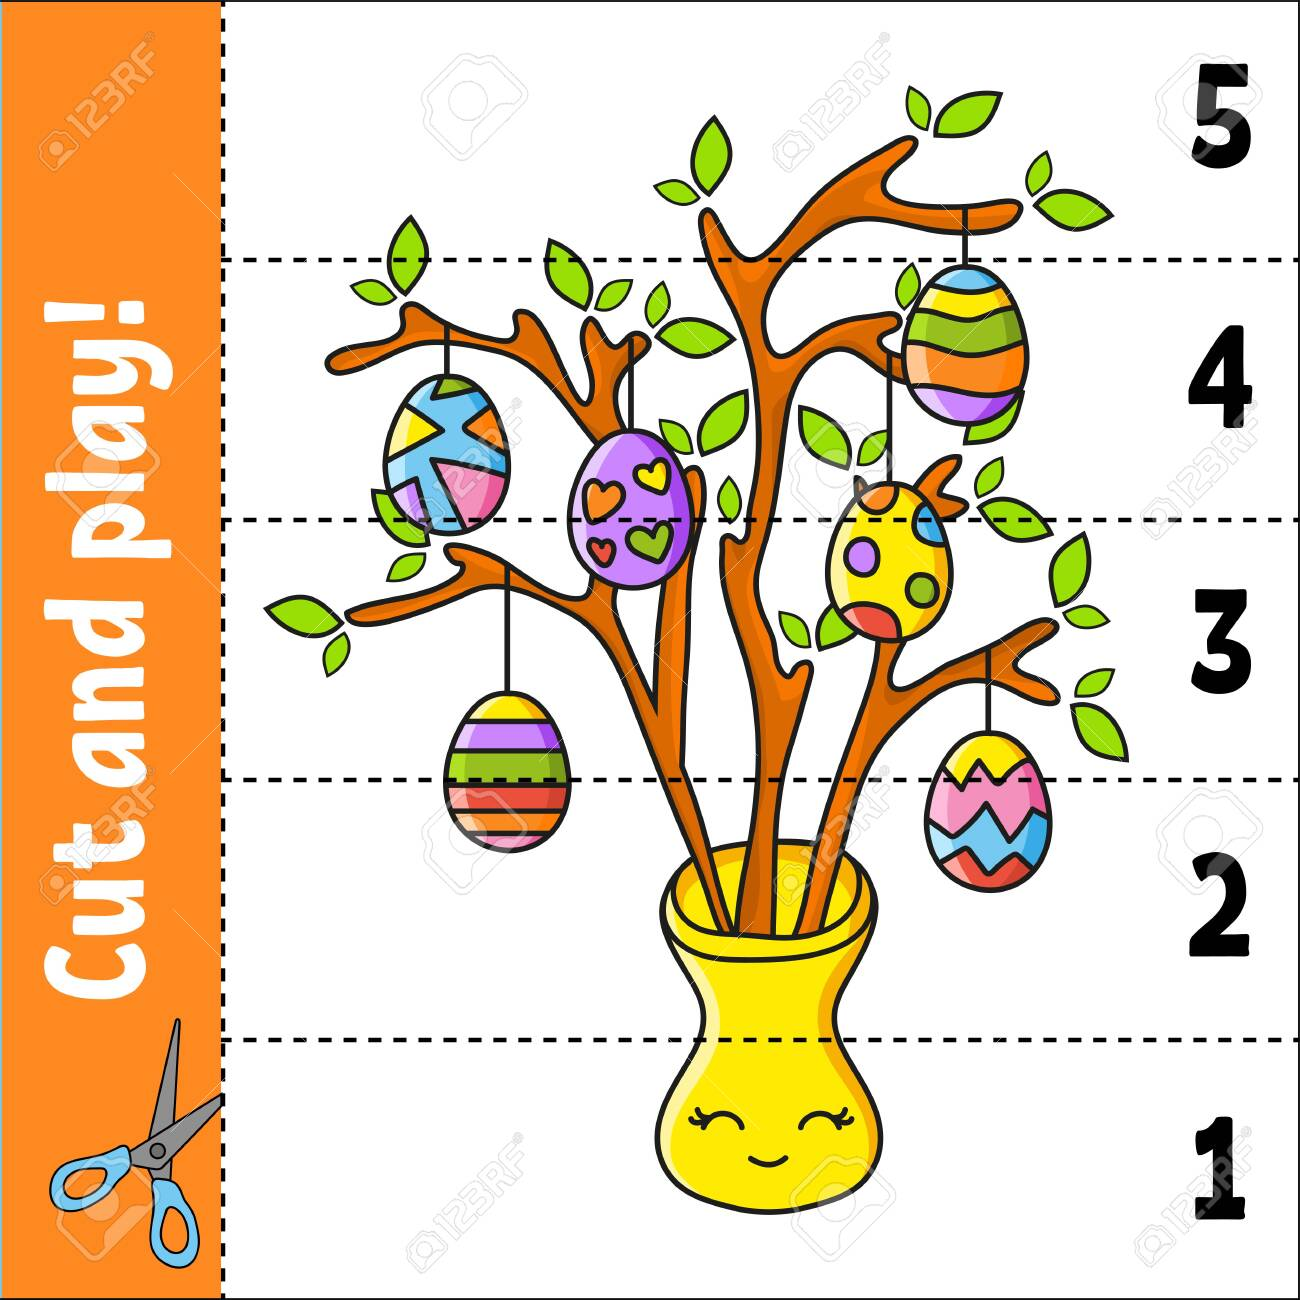 Learning Numbers 1 5 Cut And Play Education Worksheet Game Royalty Free Cliparts Vectors And Stock Illustration Image 154456820